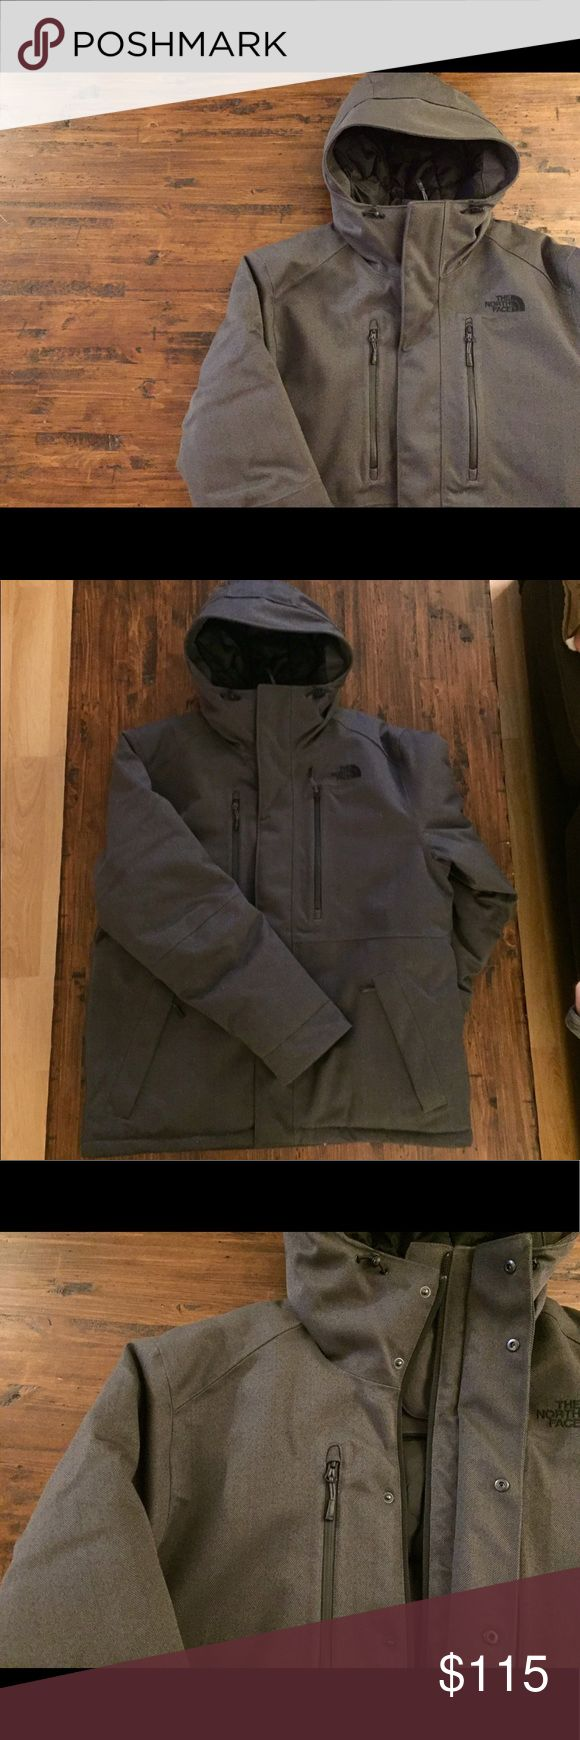 North Face Winter Jacket North Face heavy, winter jacket with gray herringbone pattern. This jacket is SUPER WARM and was only WORN ONCE!! Has 4 pockets on the front. 1 pocket inside with hole for headphones cord. Elastic drawstrings at neck and hips. This jacket is a steal! The North Face Jackets & Coats Ski & Snowboard